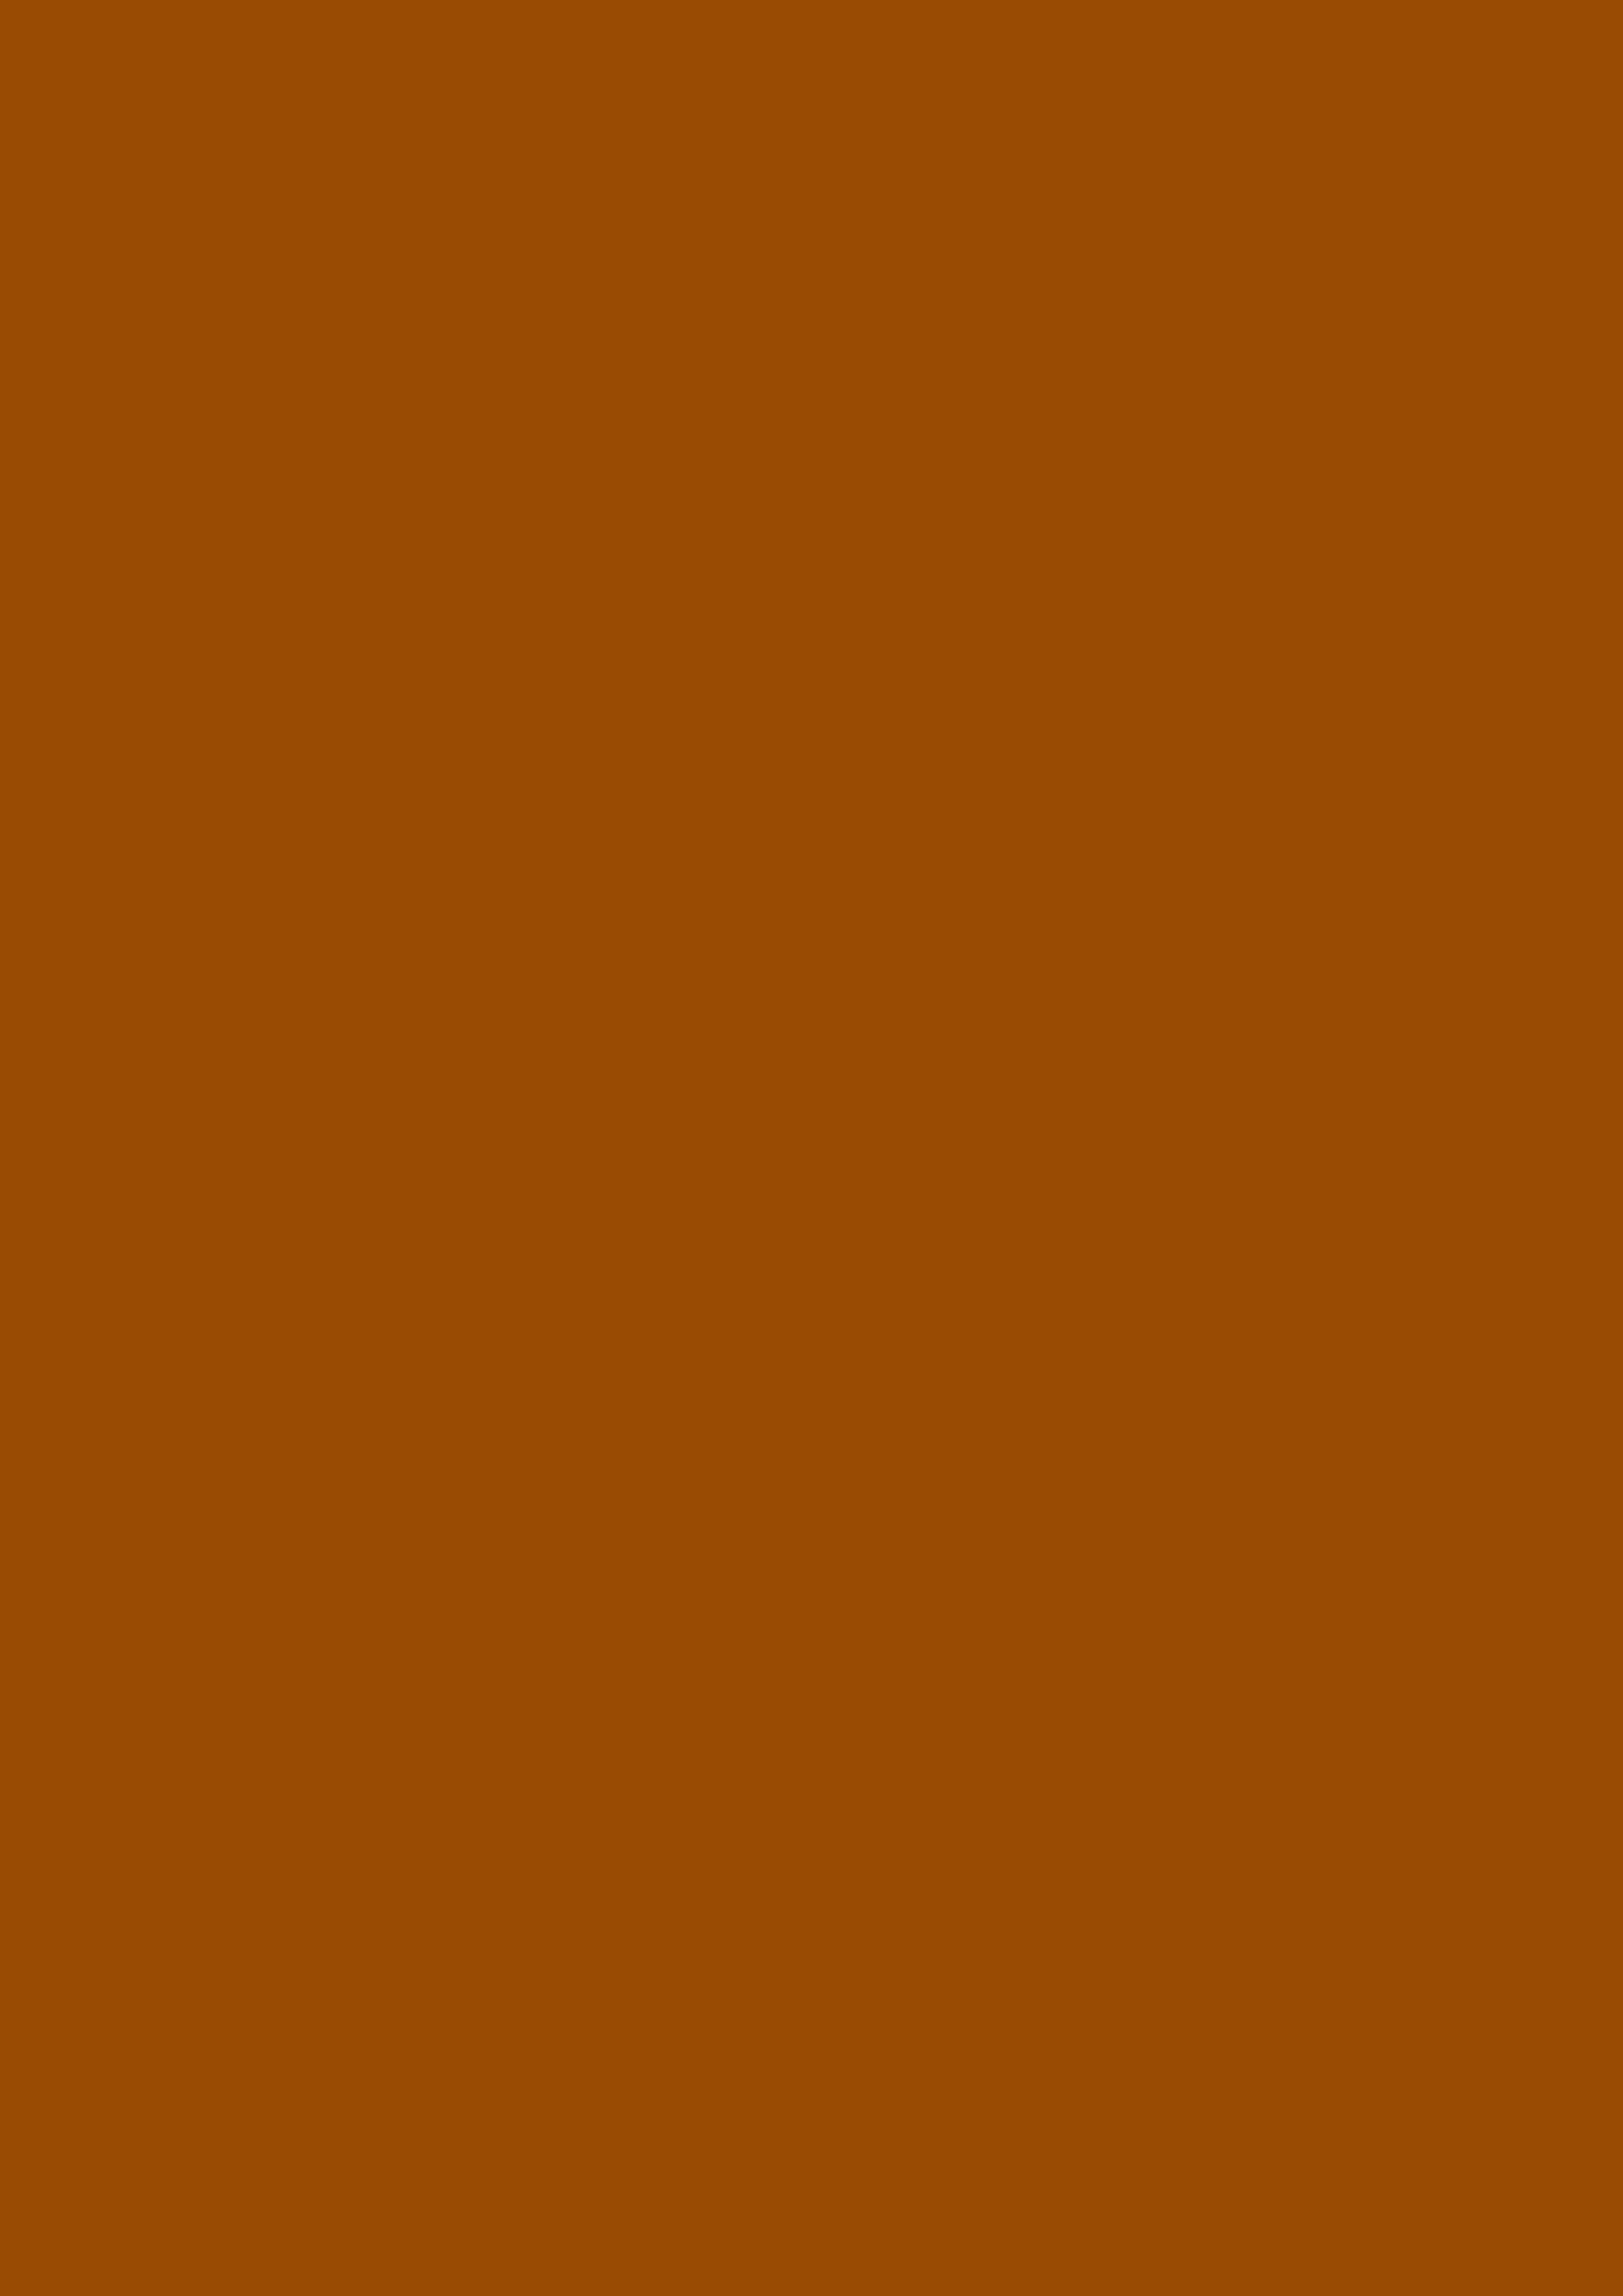 2480x3508 Brown Traditional Solid Color Background